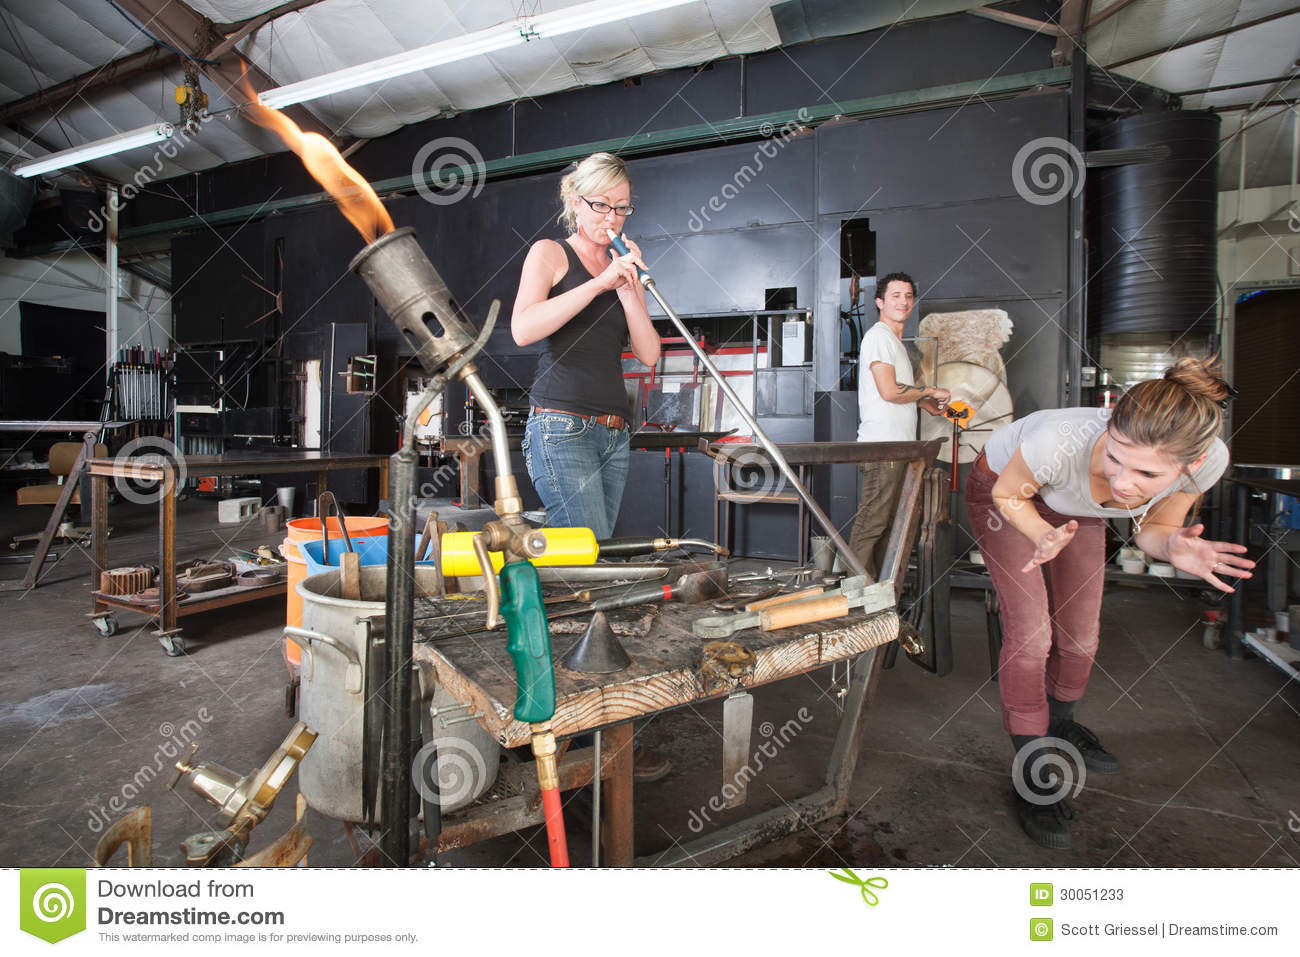 Distracted Glass Workers Stock Photos - Image: 30051233